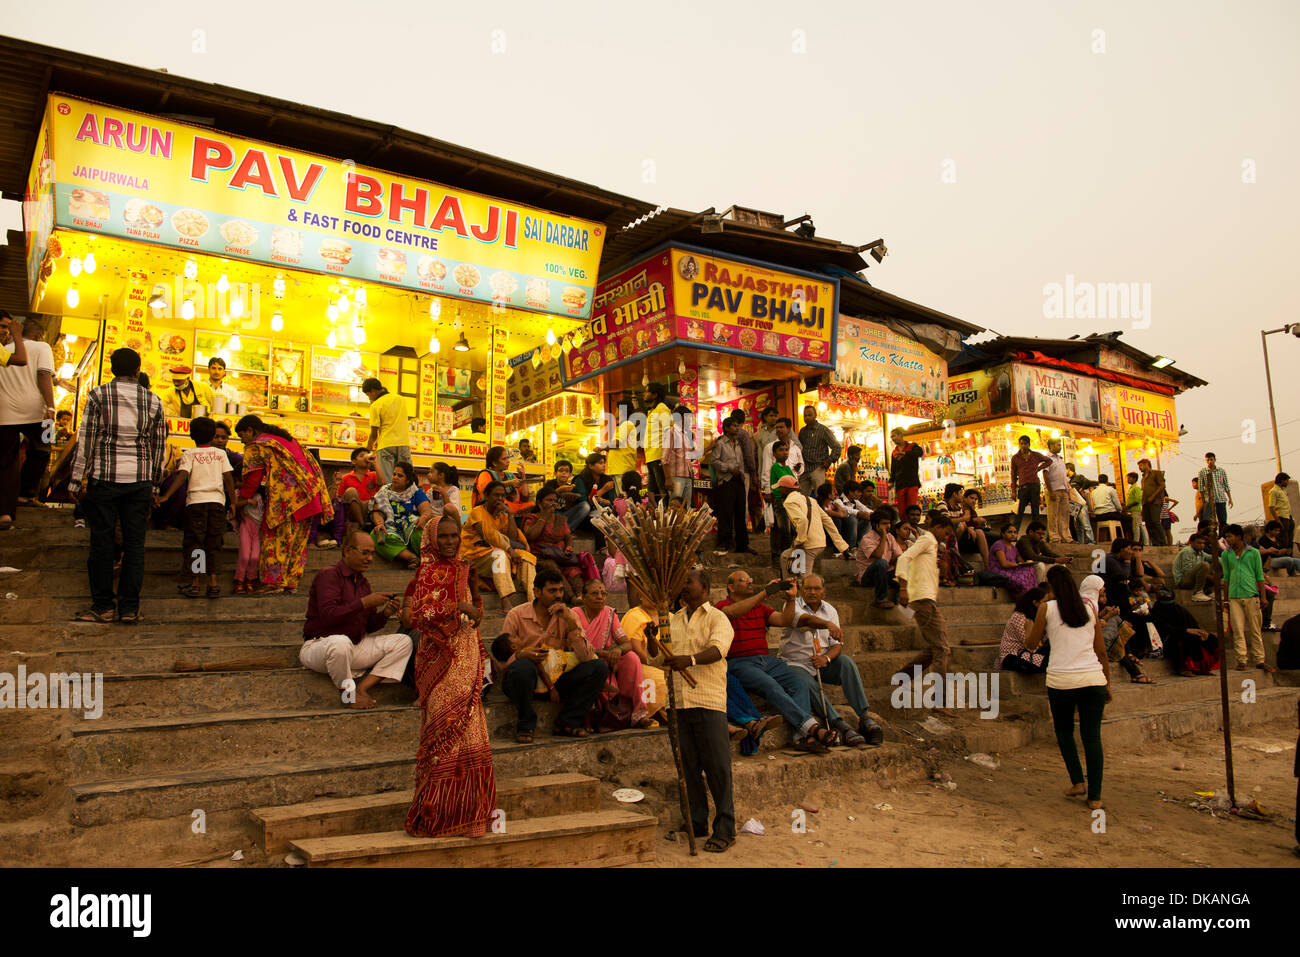 People on the beach in front of food stalls, Juhu Beach. Mumbai, India - Stock Image